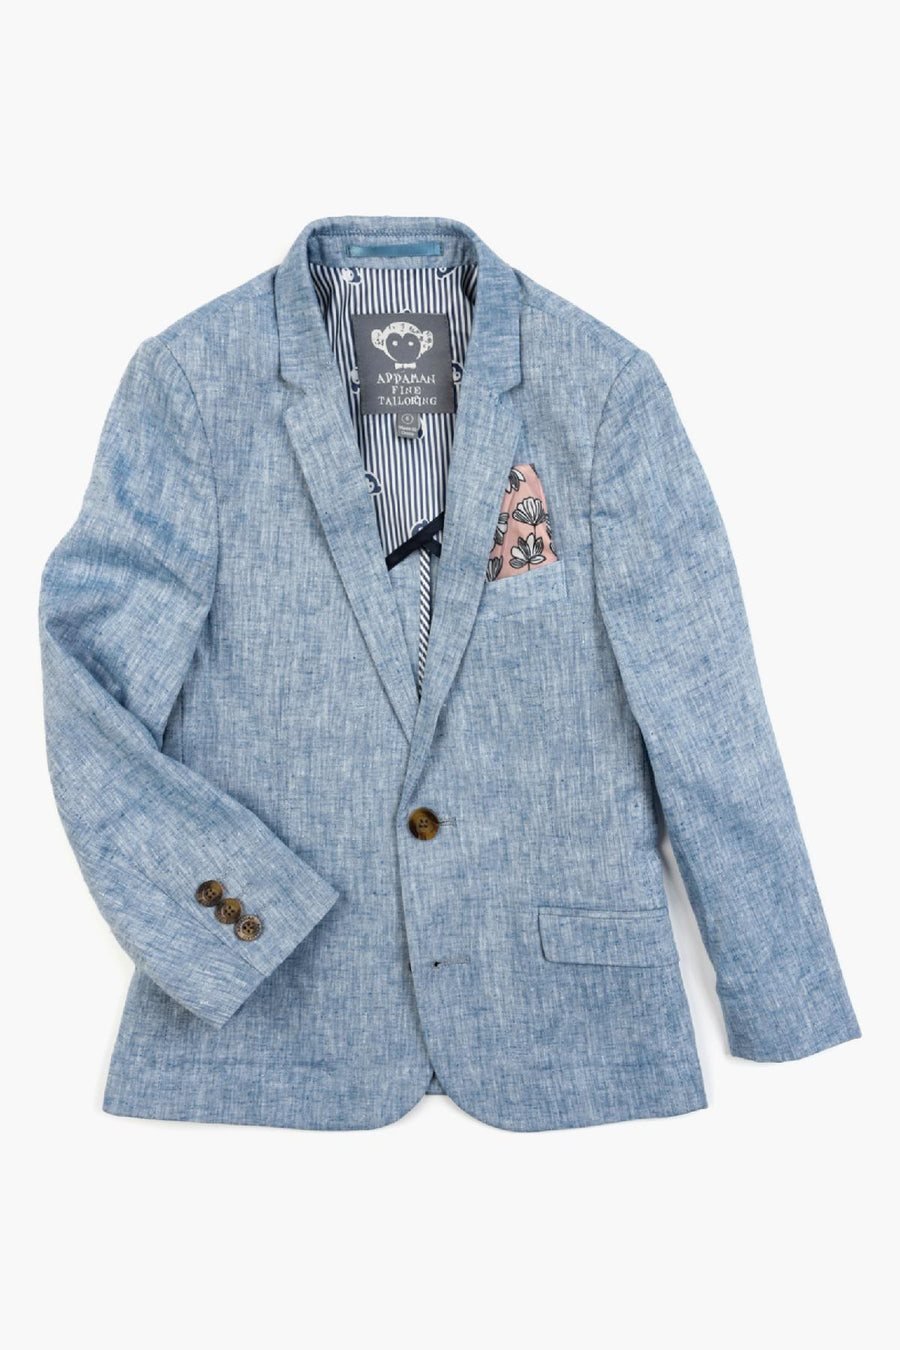 Appaman Boys Sports Jacket